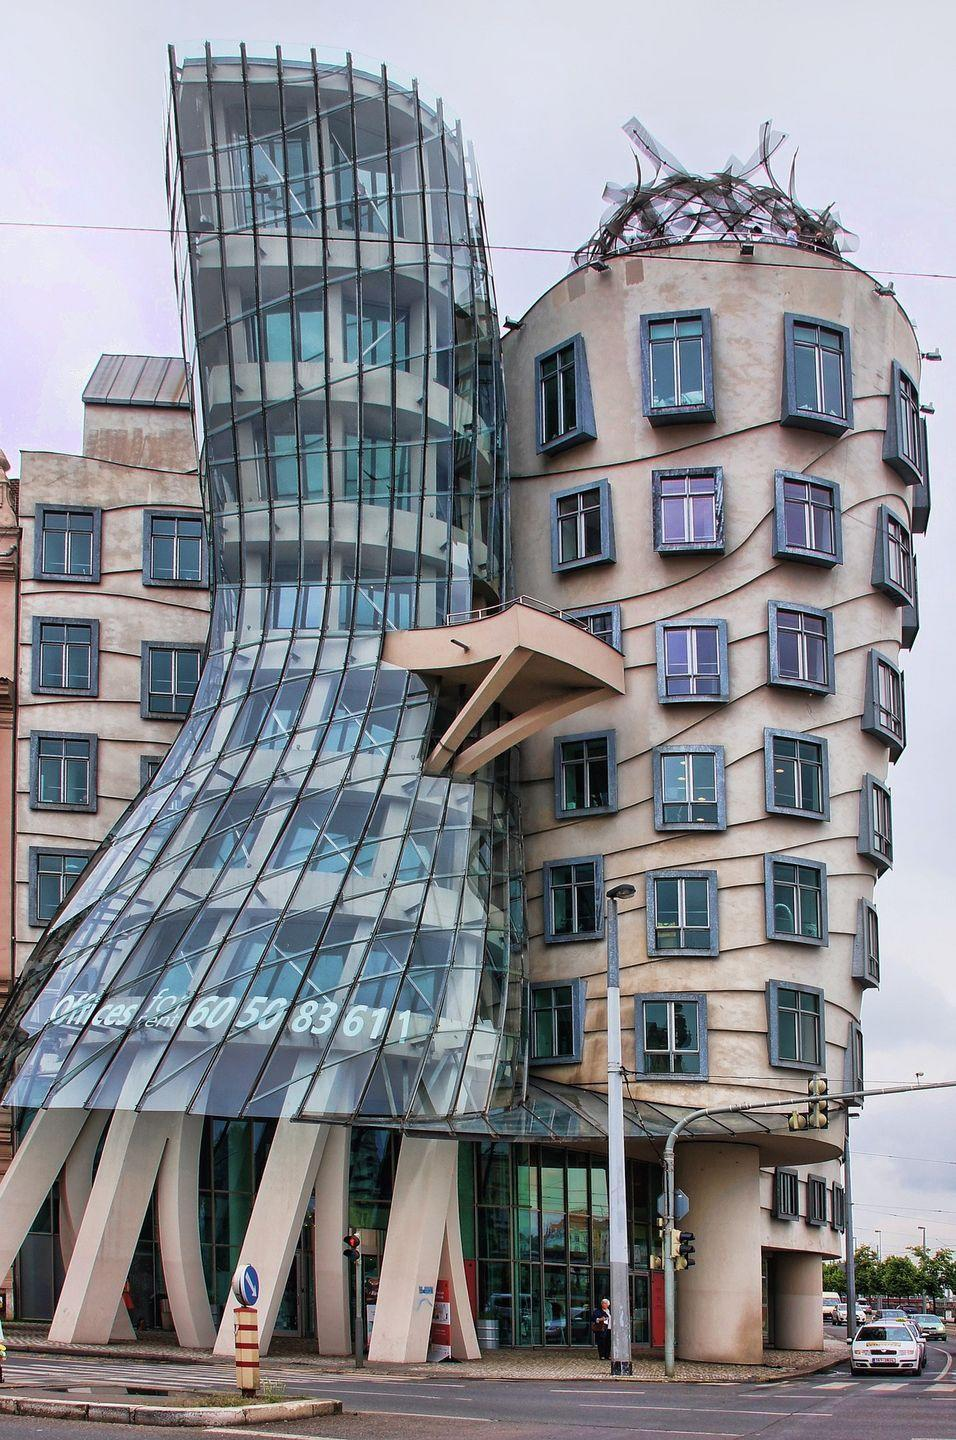 <p>This unique-looking building, which is located on one of the Vltava River's side, is certainly a sight to behold. Built in 1996 by architects Vlado Milunić and Frank Gehry, the building gets its name as it resembles the famous figures of dancers Ginger Rogers and Fred Astaire. </p>